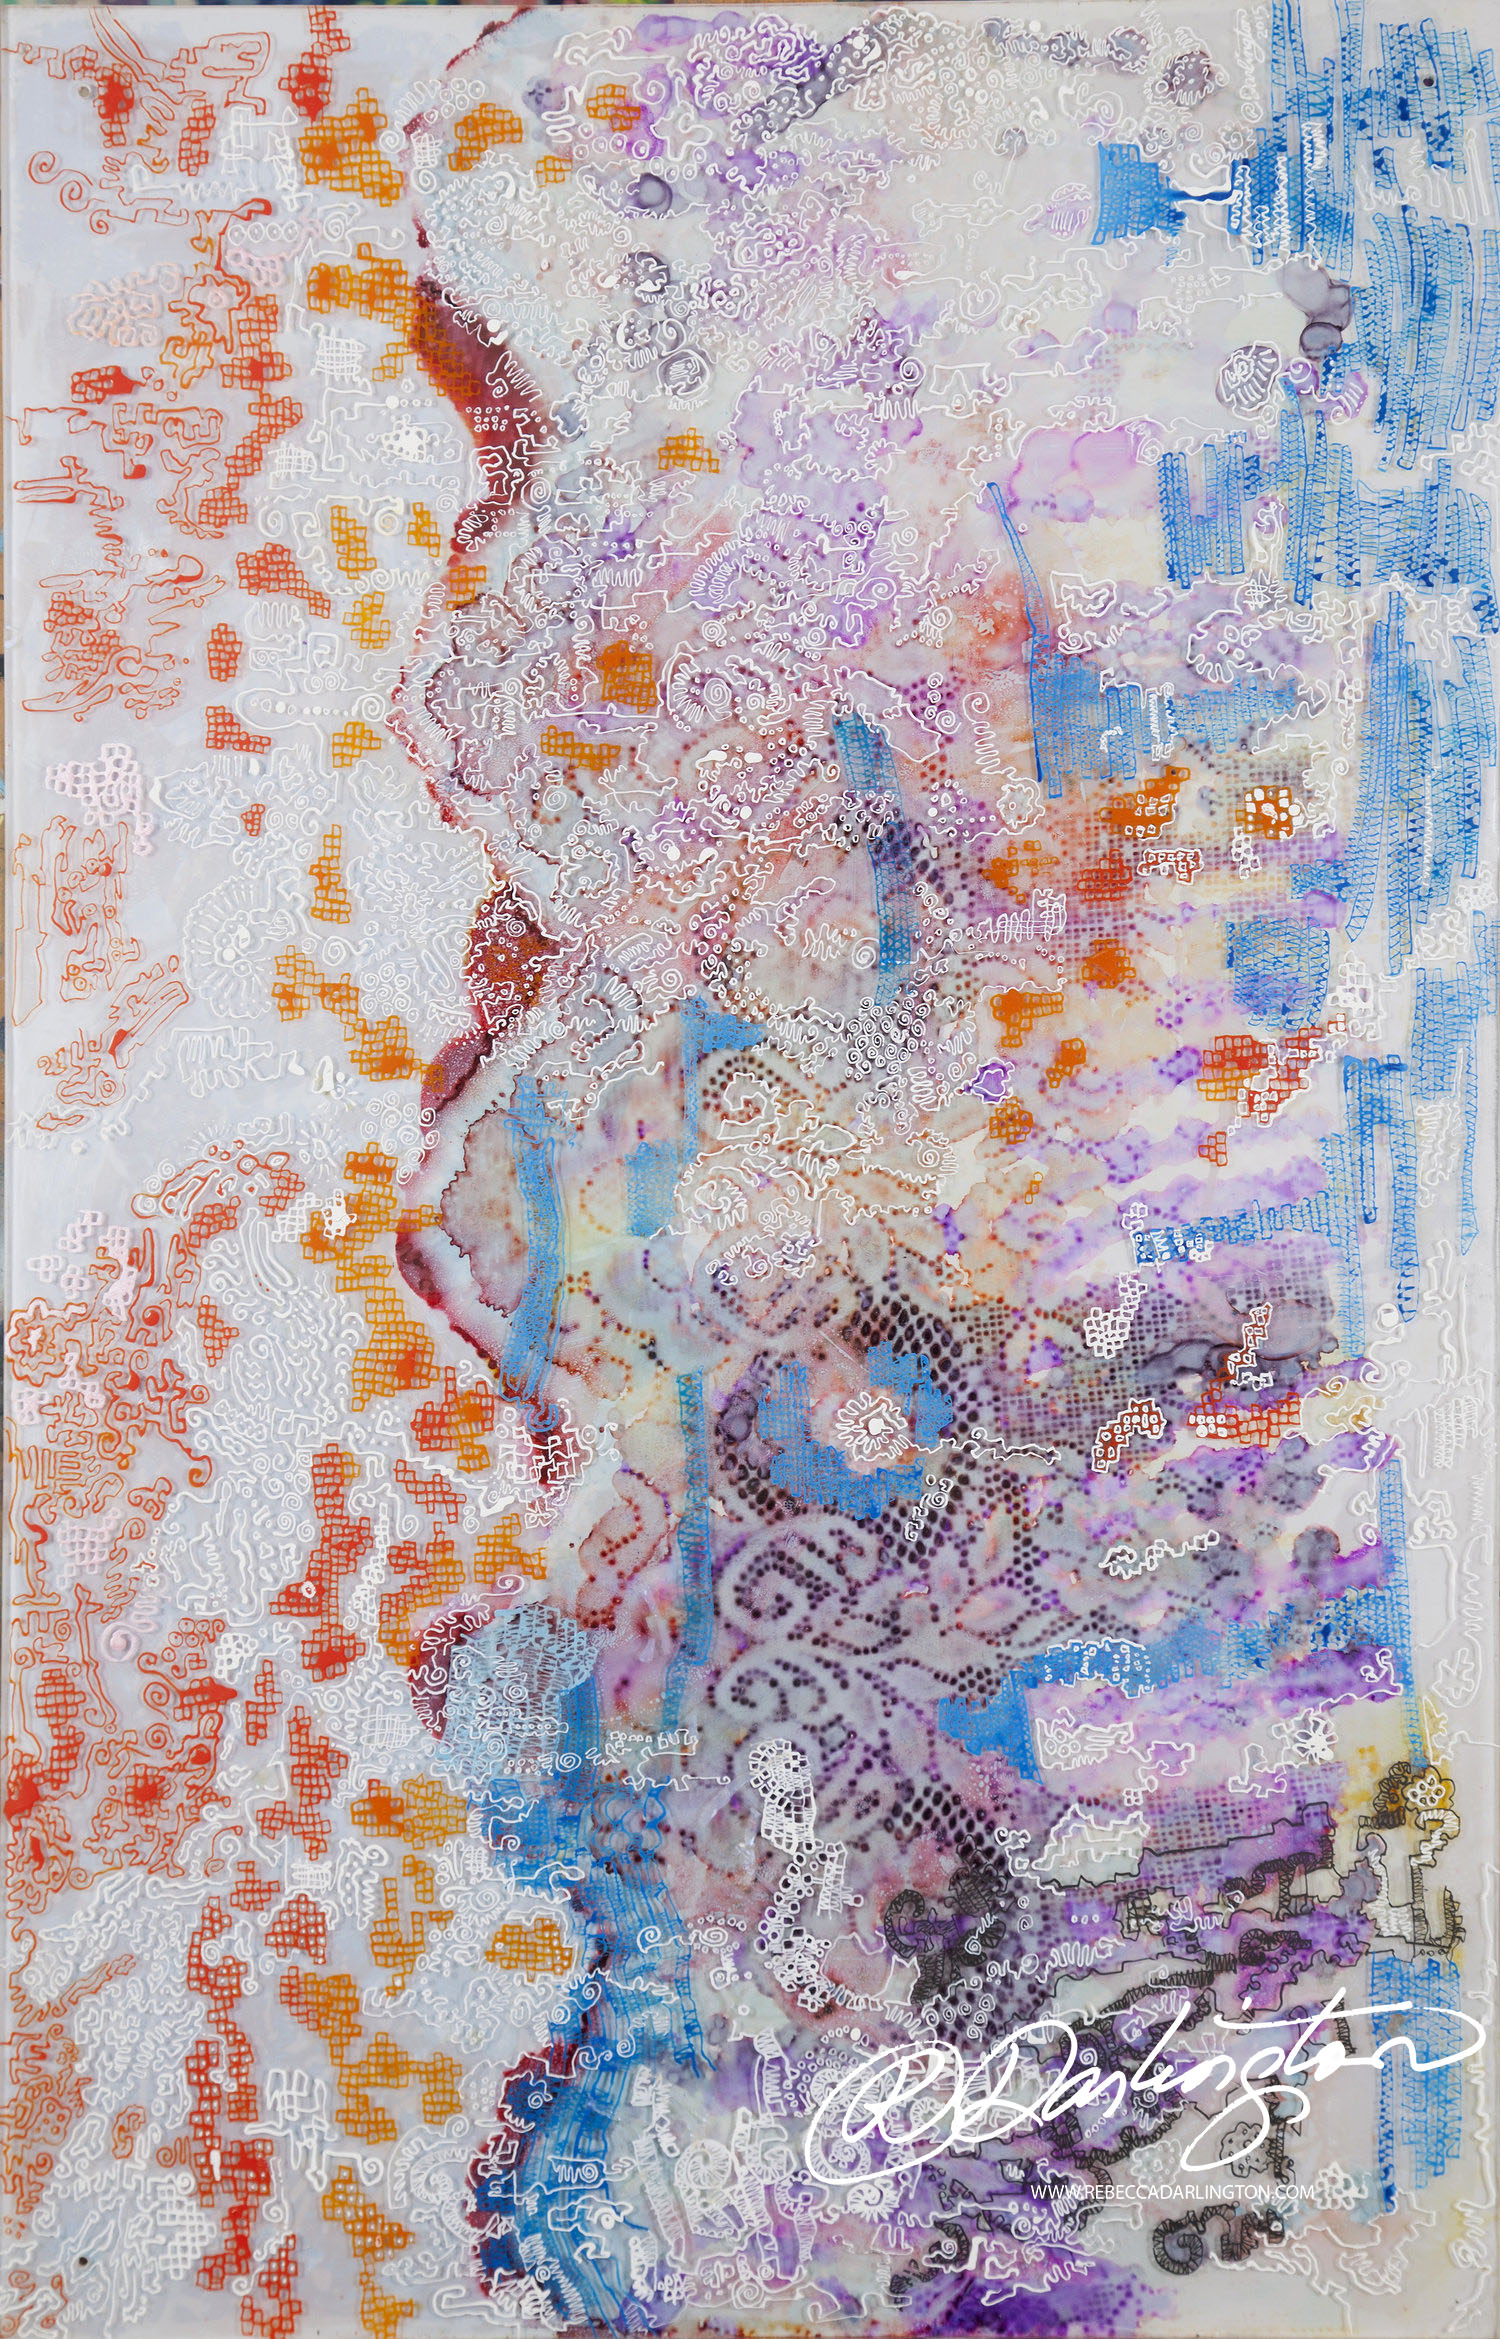 A Painting Using Encaustic, Oil Sticks, Plexiglass, displayed in New York City